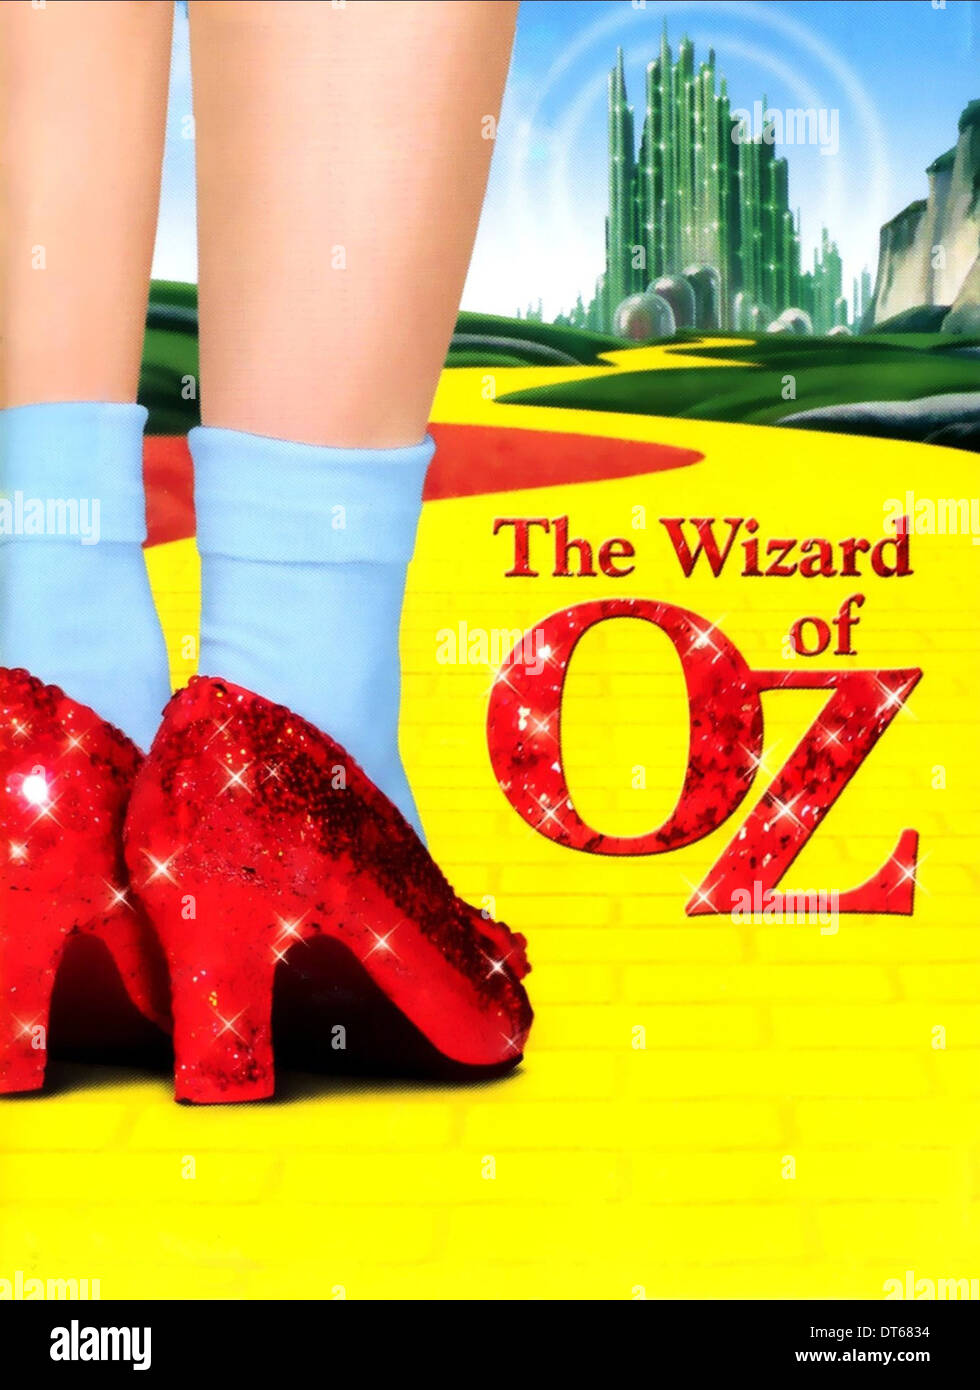 Where Can I Buy Wizard Of Oz Shoes